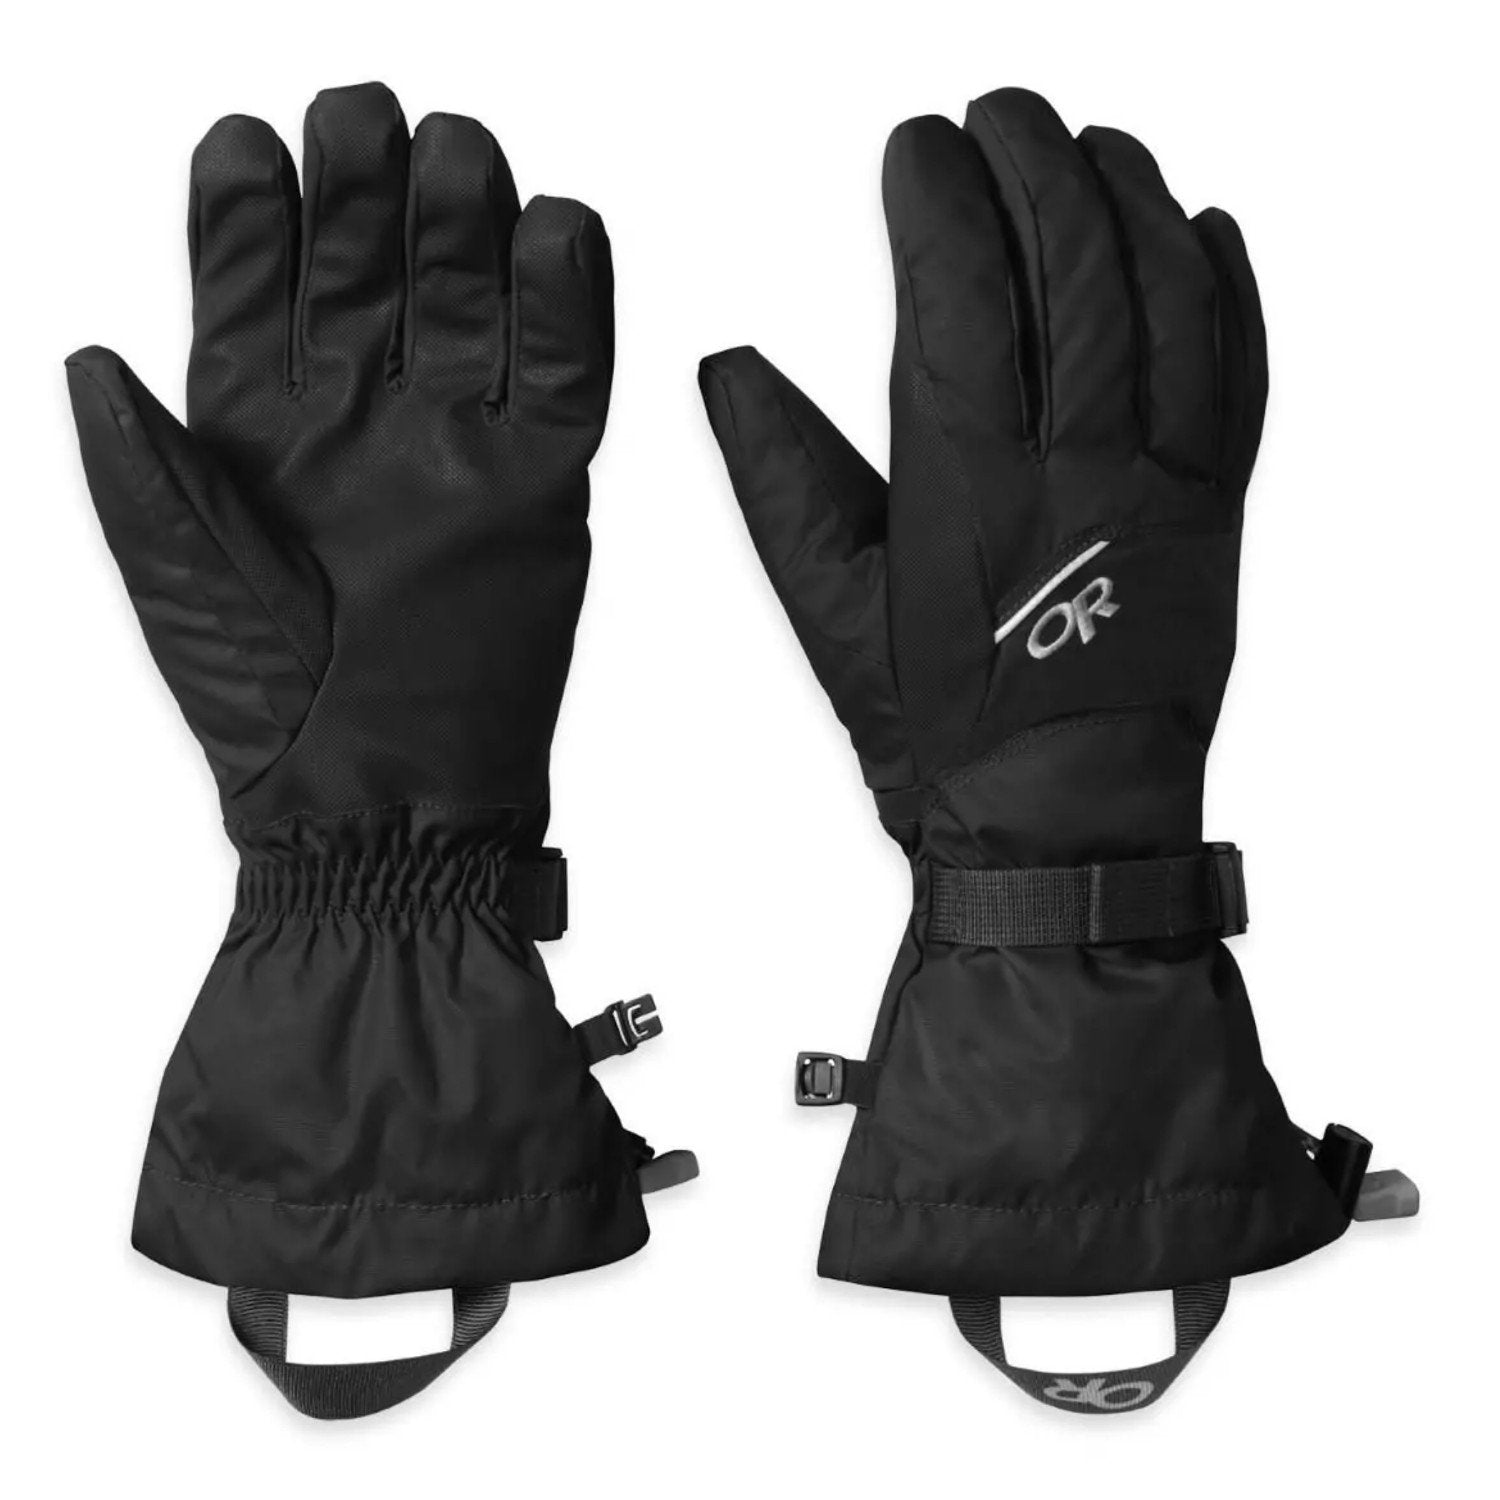 Pair of Outdoor Research Adrenaline Gloves side by side, one showing front and one showing reverse